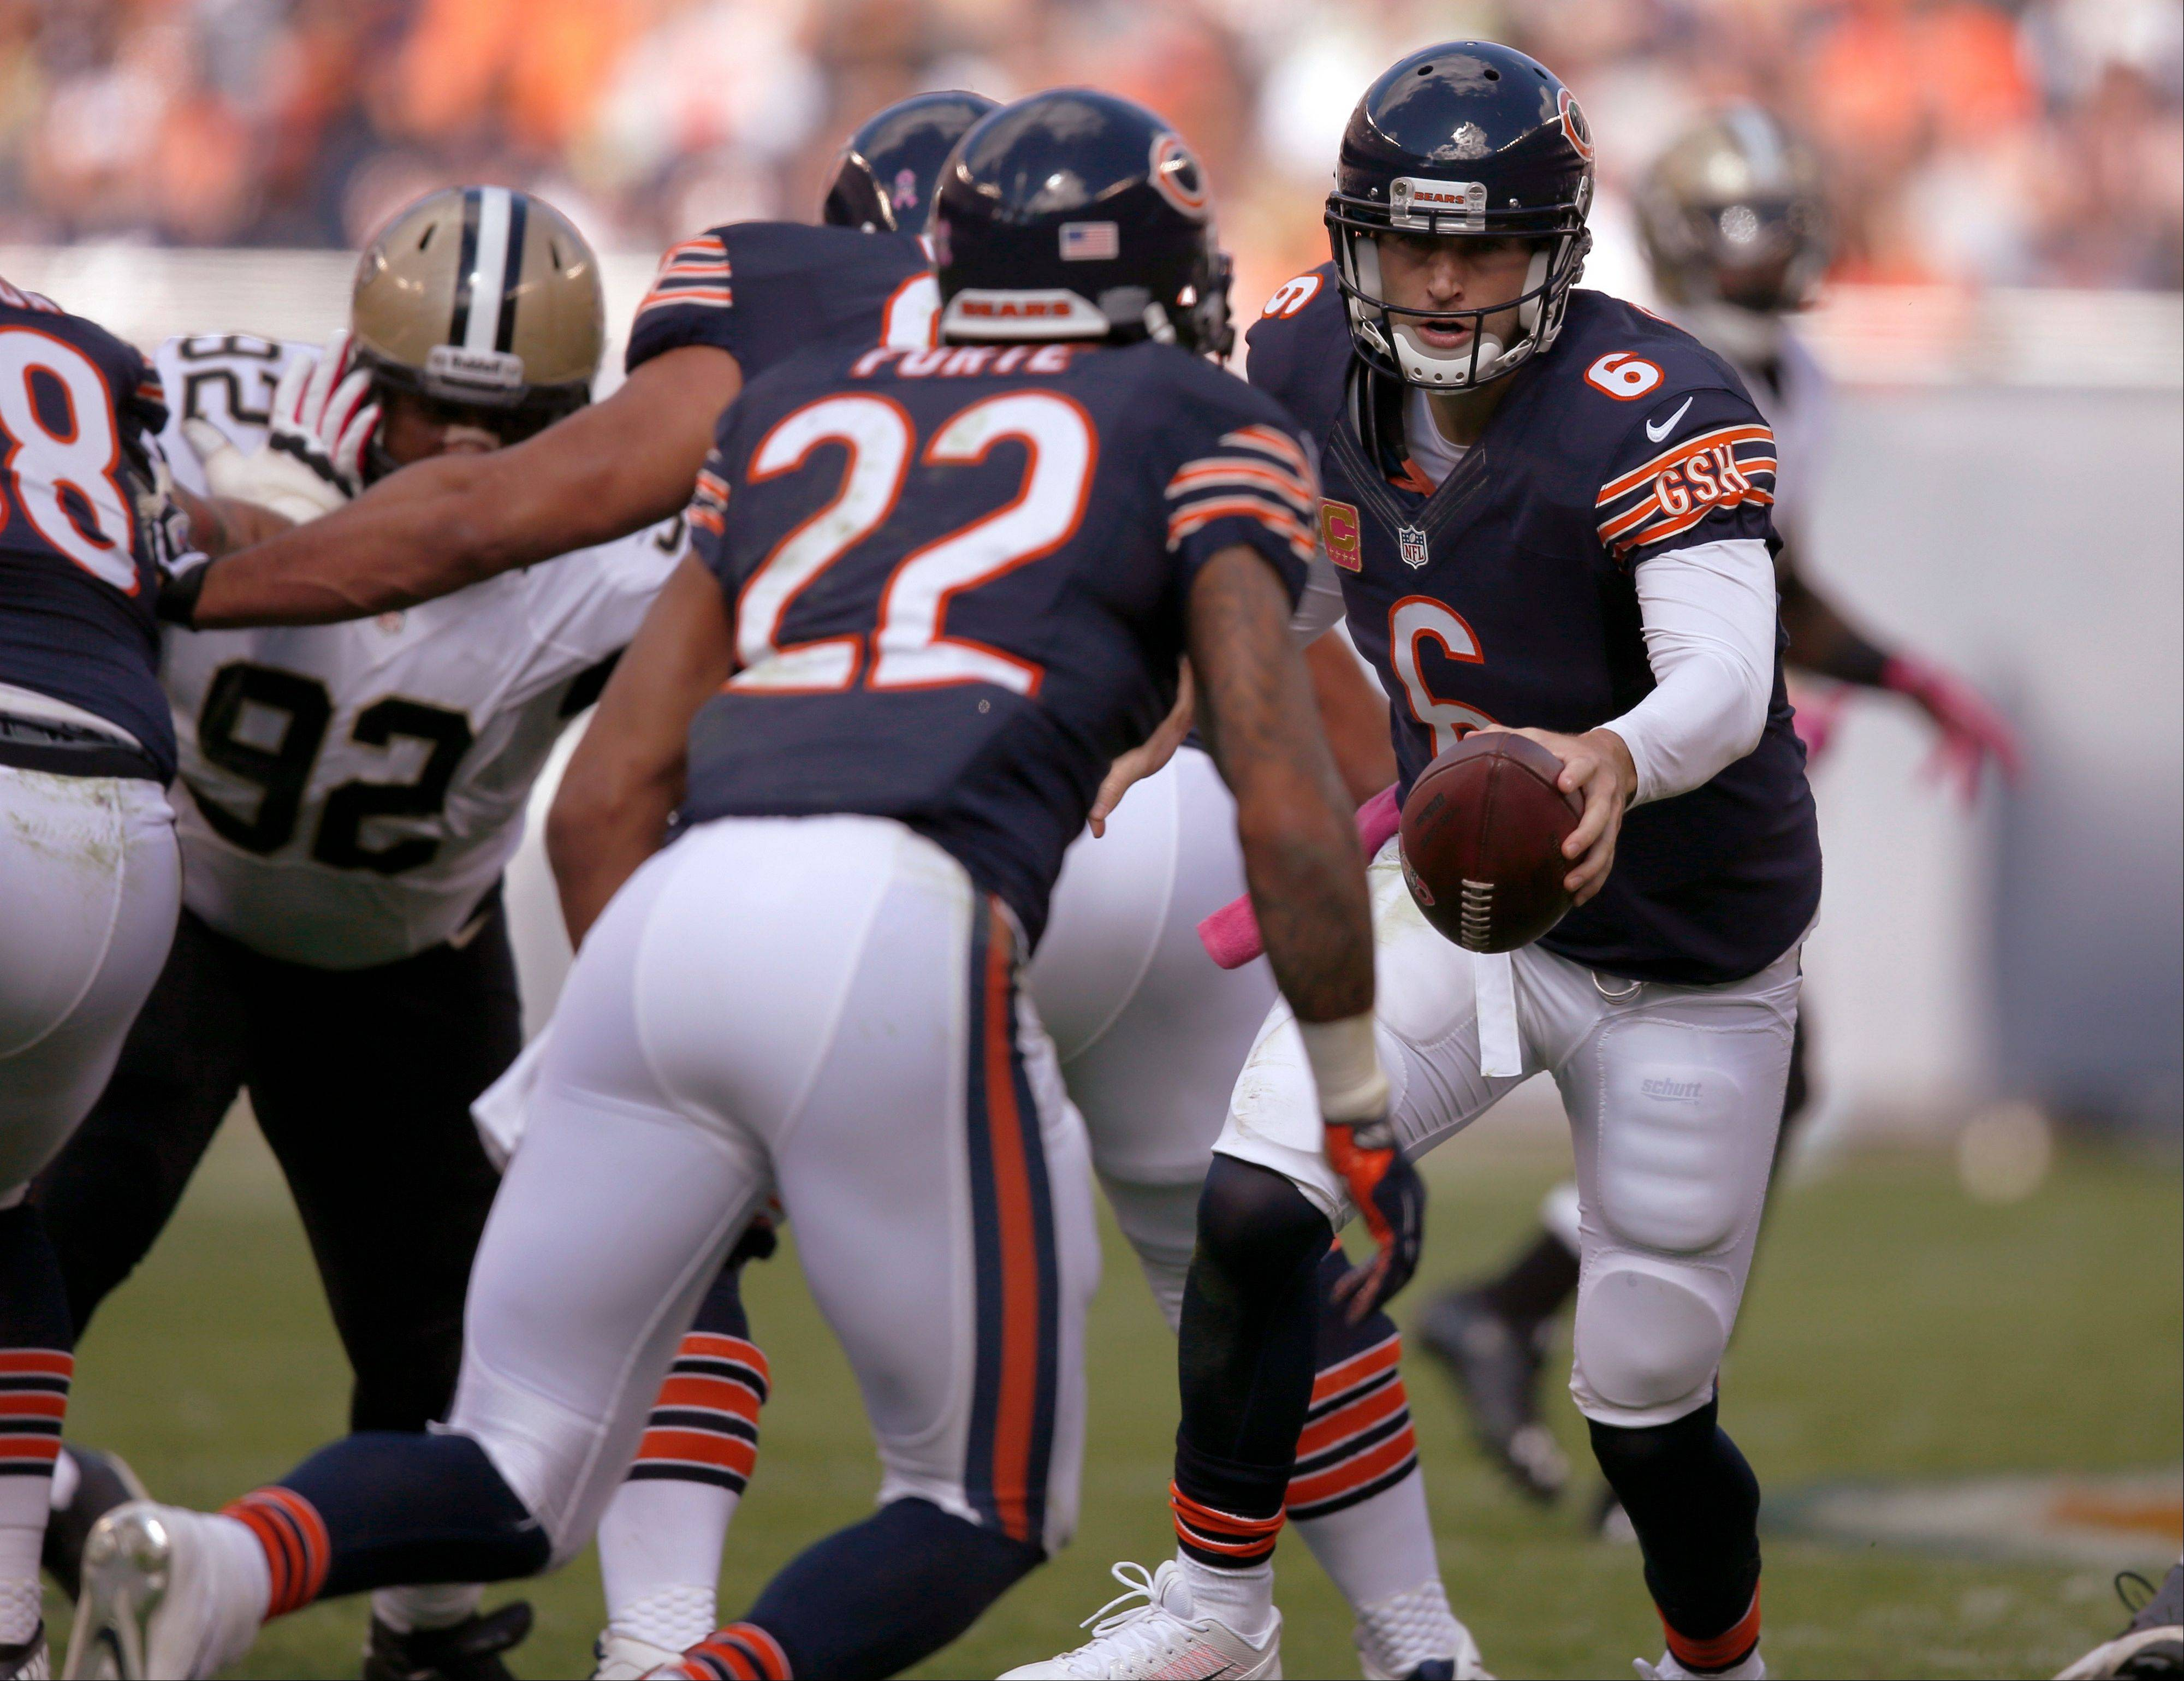 Another rocky start by quarterback Jay Cutler and the Bears� offense Sunday created a hole that was too deep to escape against the undefeated Saints.